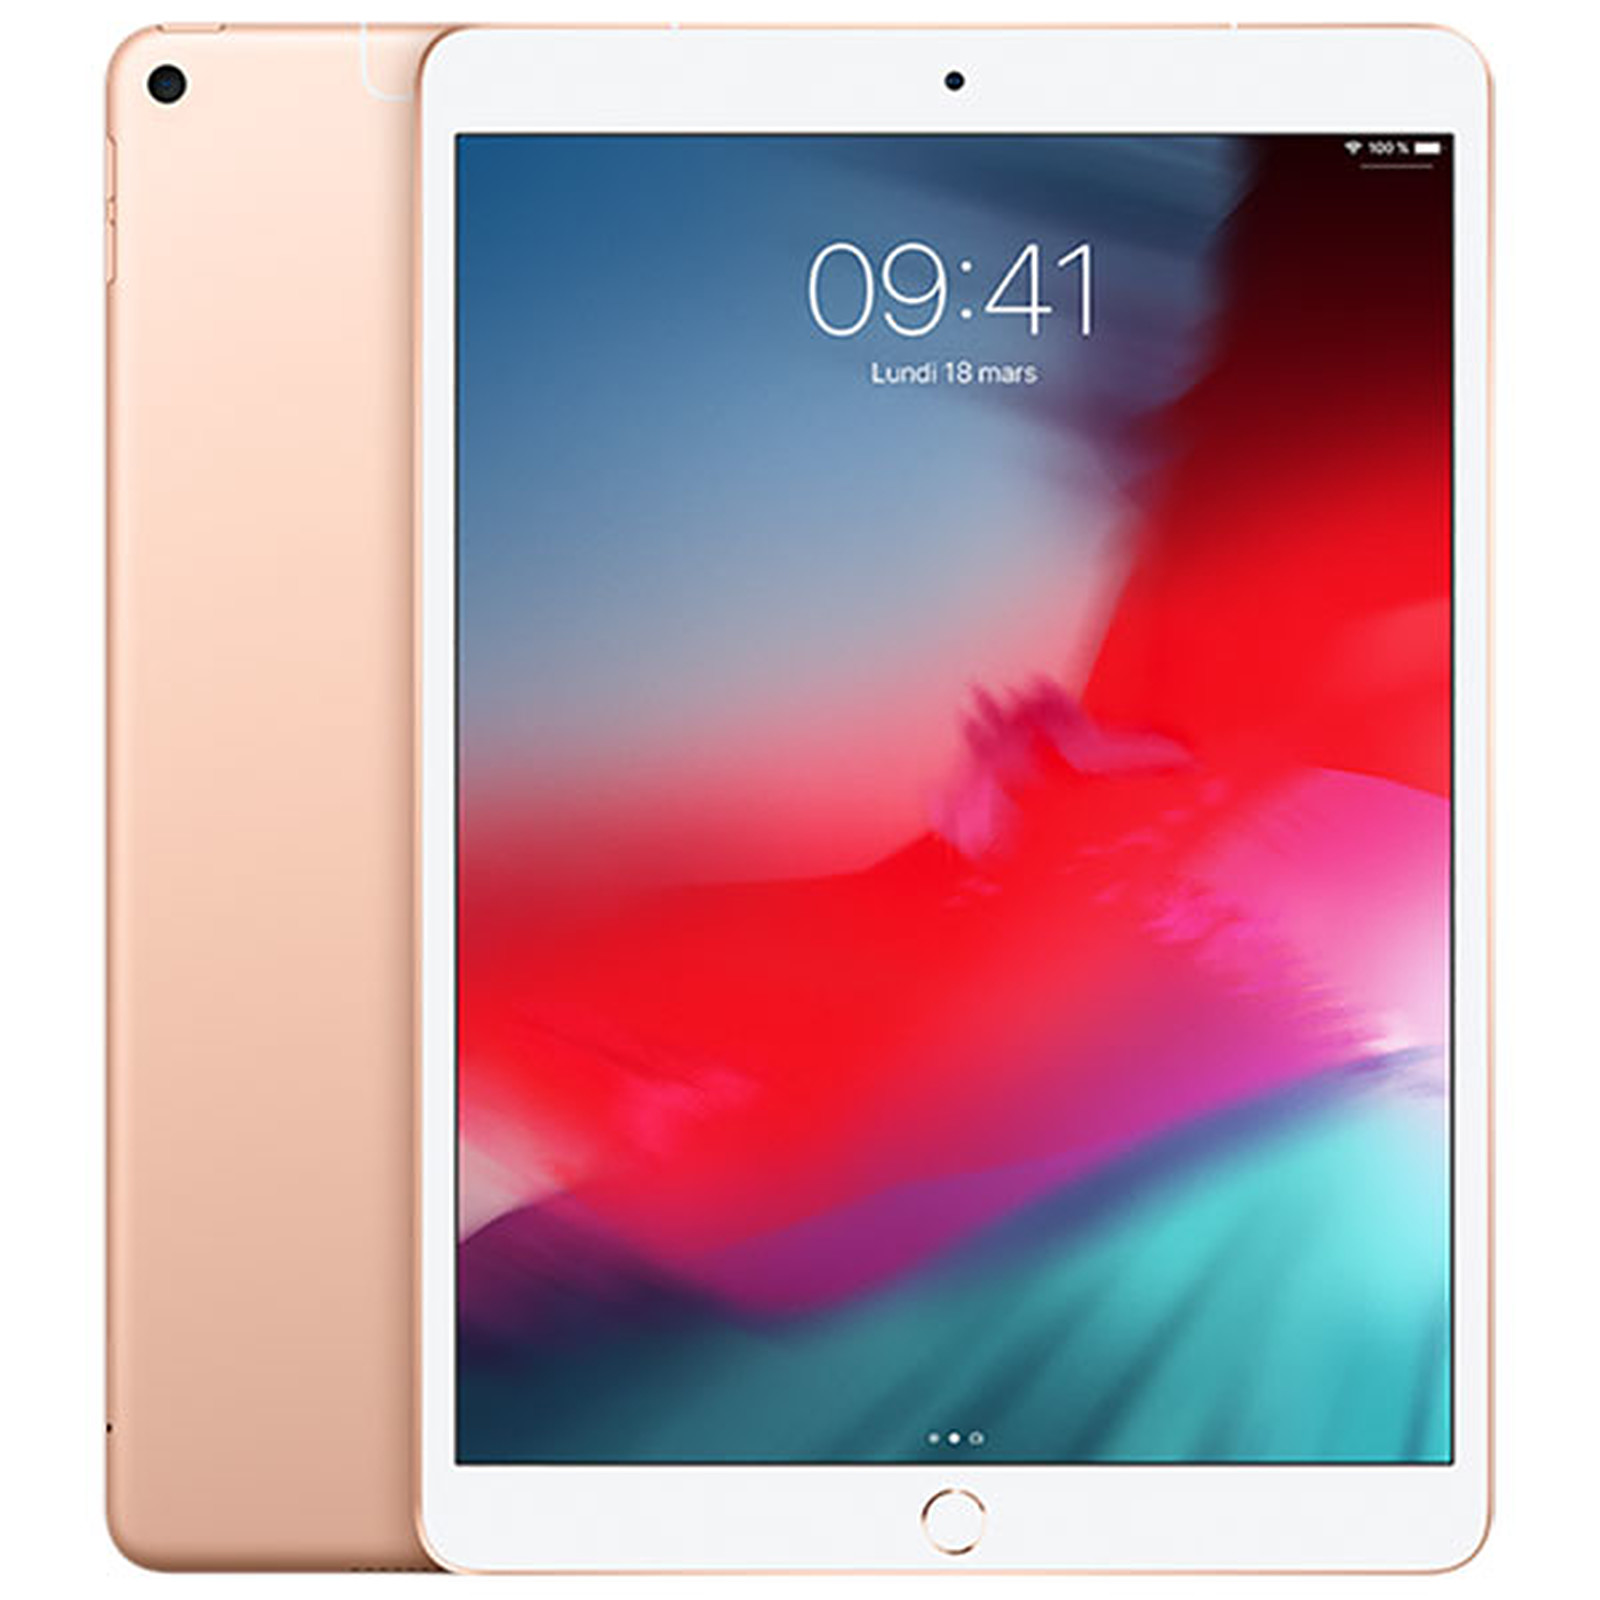 Apple iPad Air (2019) Wi-Fi + Celular 256GB Gold